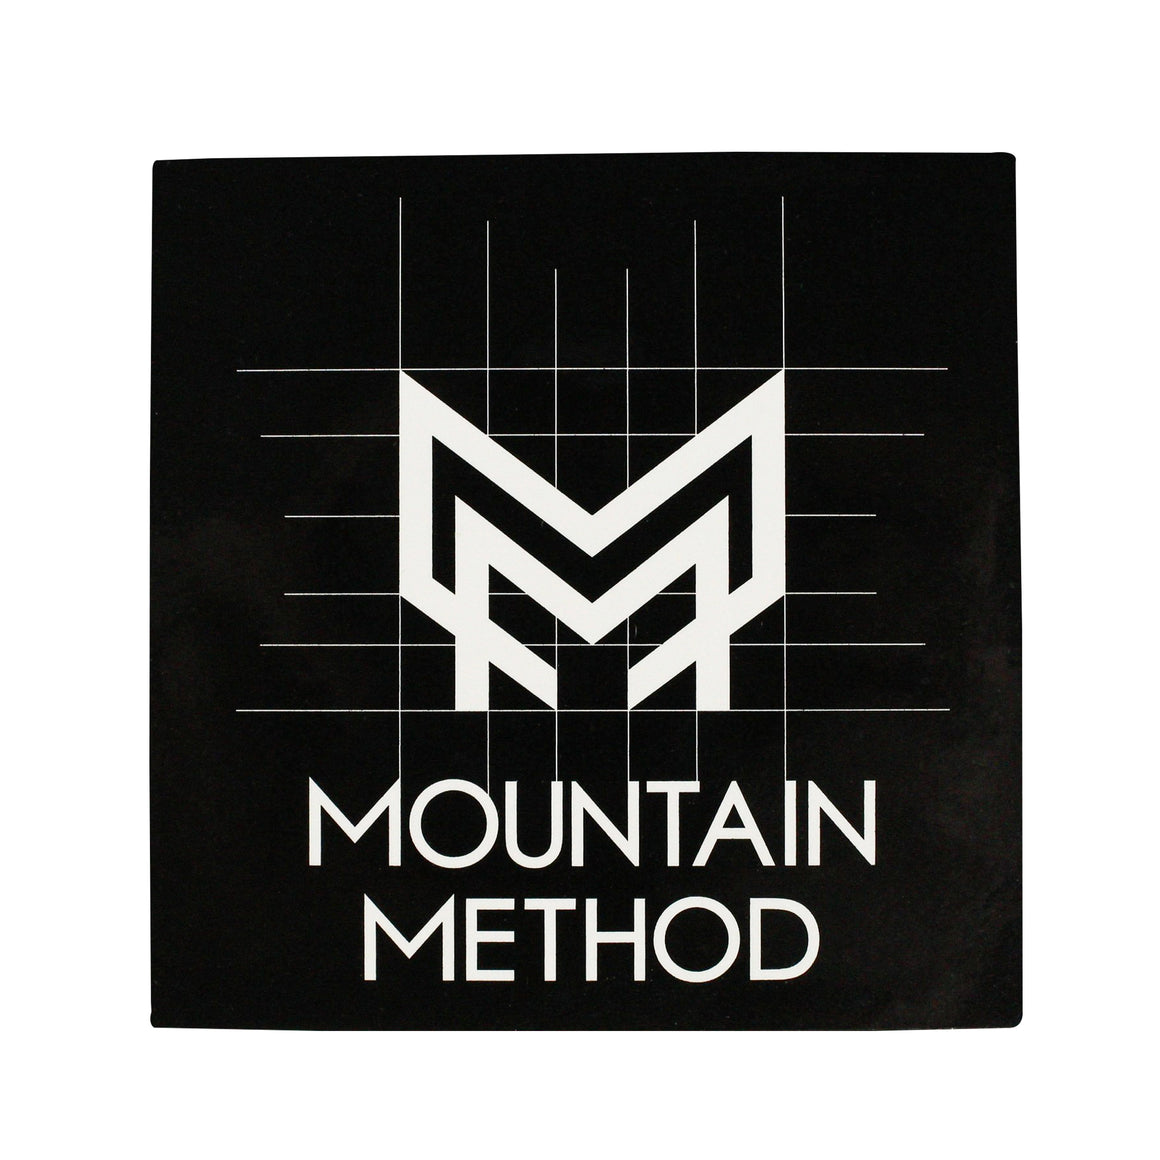 Mountain Method | Gridline Sticker 3x3 | Accessories